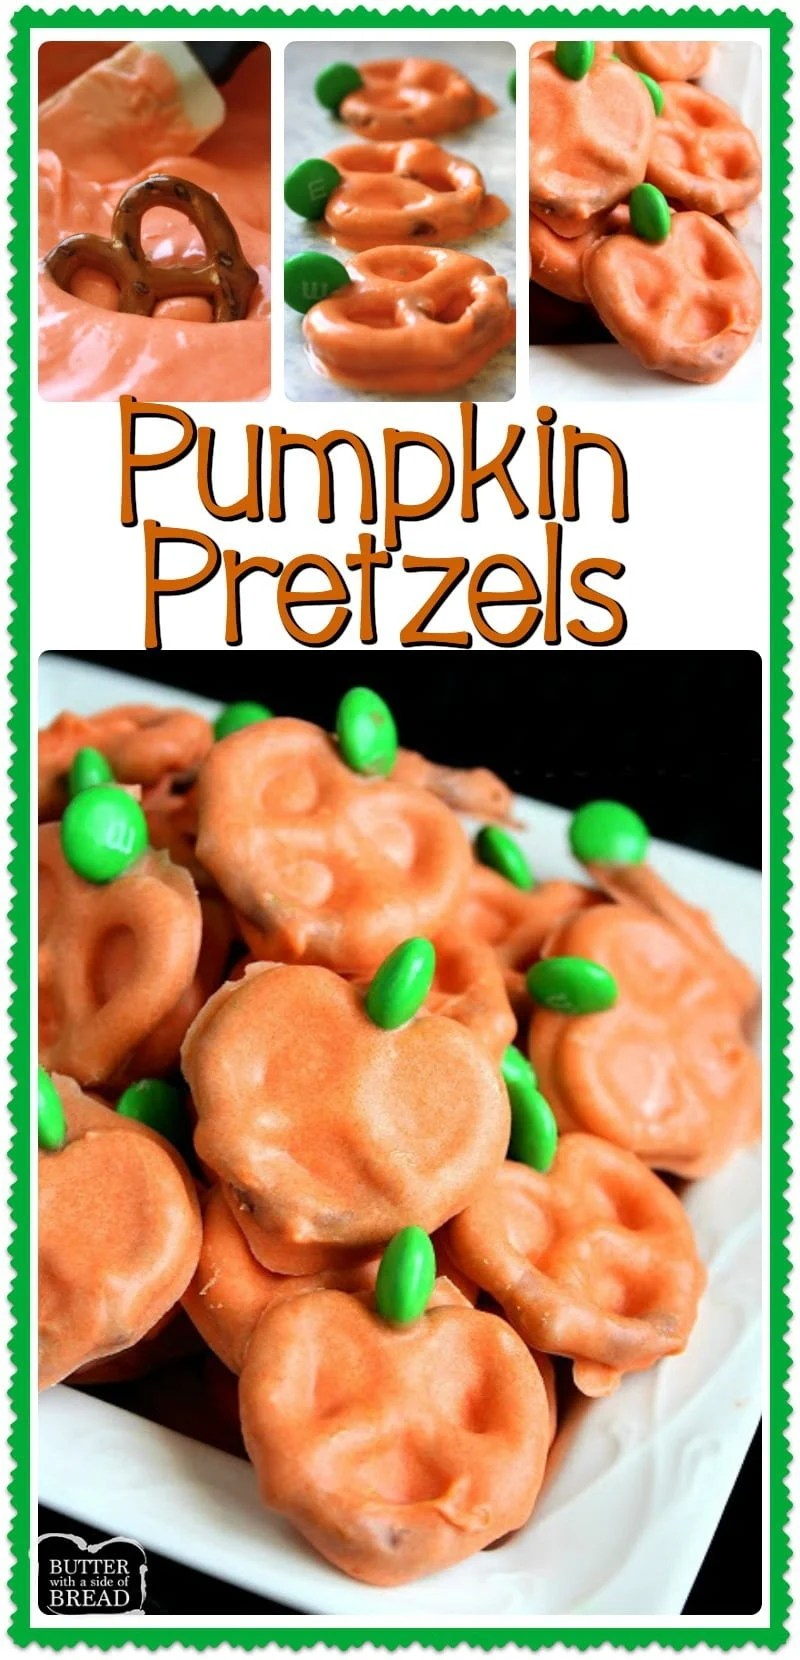 Pumpkin Pretzels are chocolate covered pretzels made with just a few ingredients & perfect for Halloween! Tips for melting chocolate & the BEST tool to use to make these darling chocolate covered pretzels. Easy #Halloween #dessert from Butter With A Side of Bread